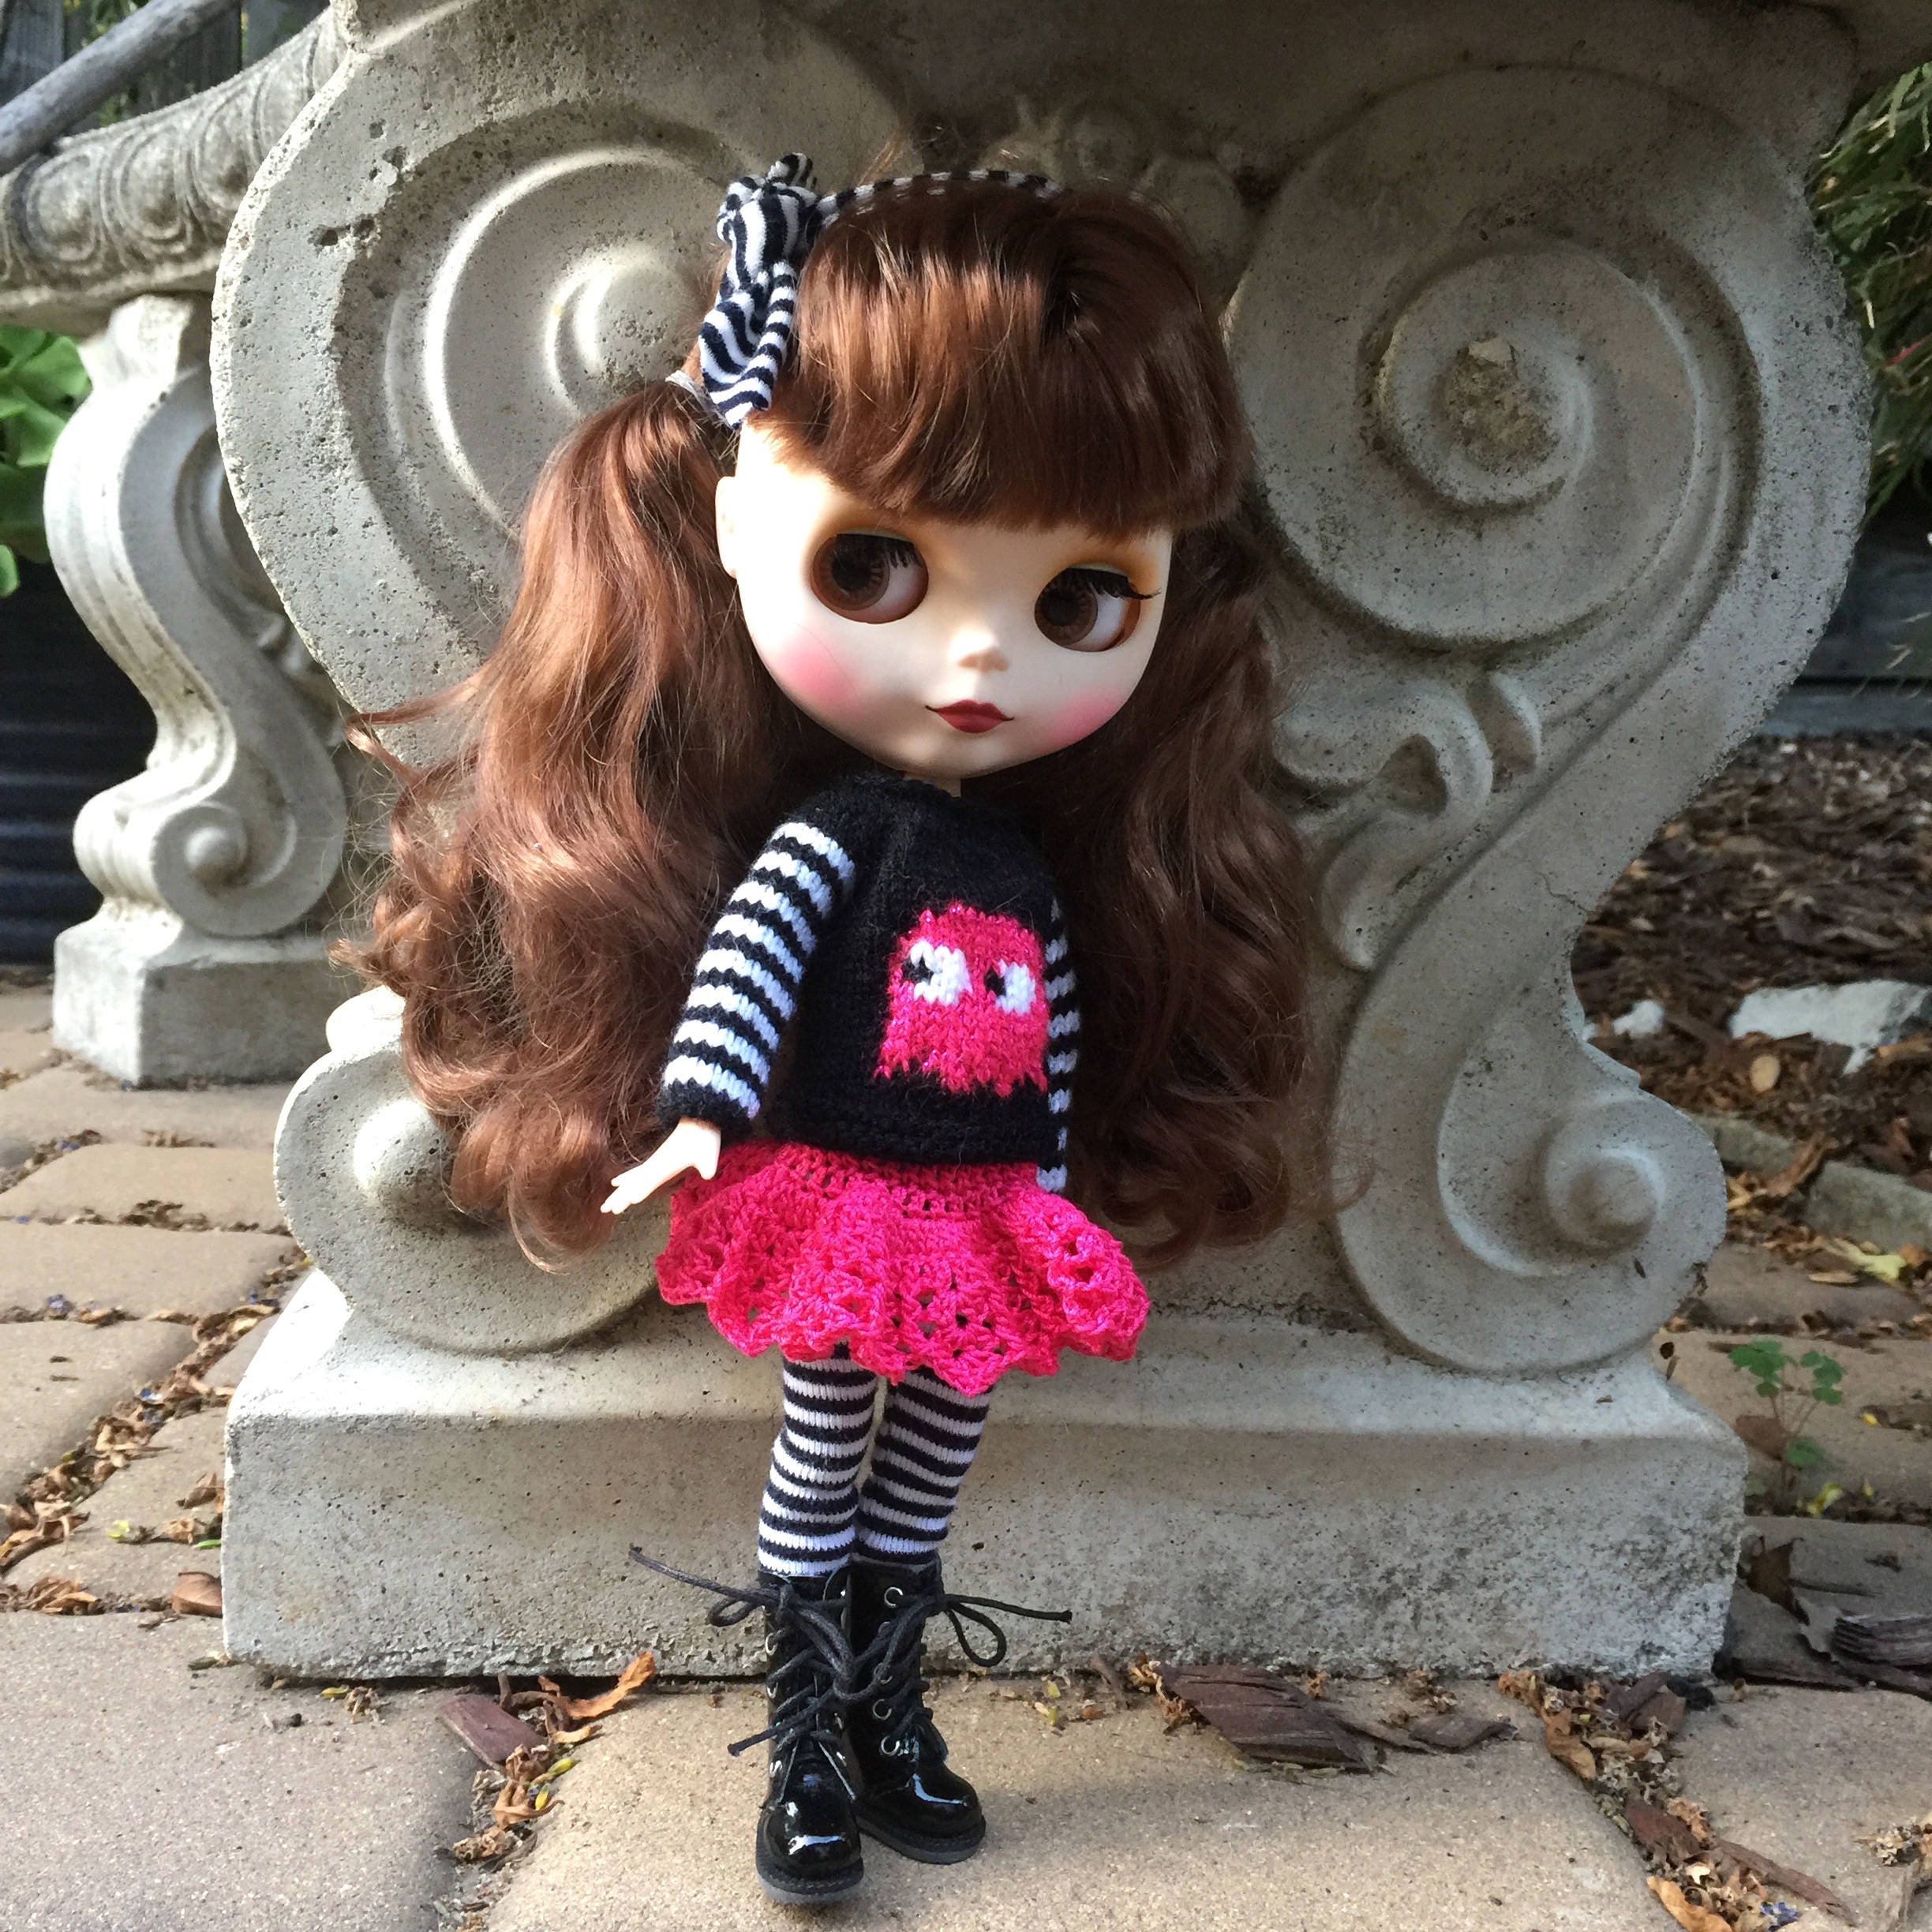 pink ghost blythe outfit halloween doll costume video game ghost sweater retro doll